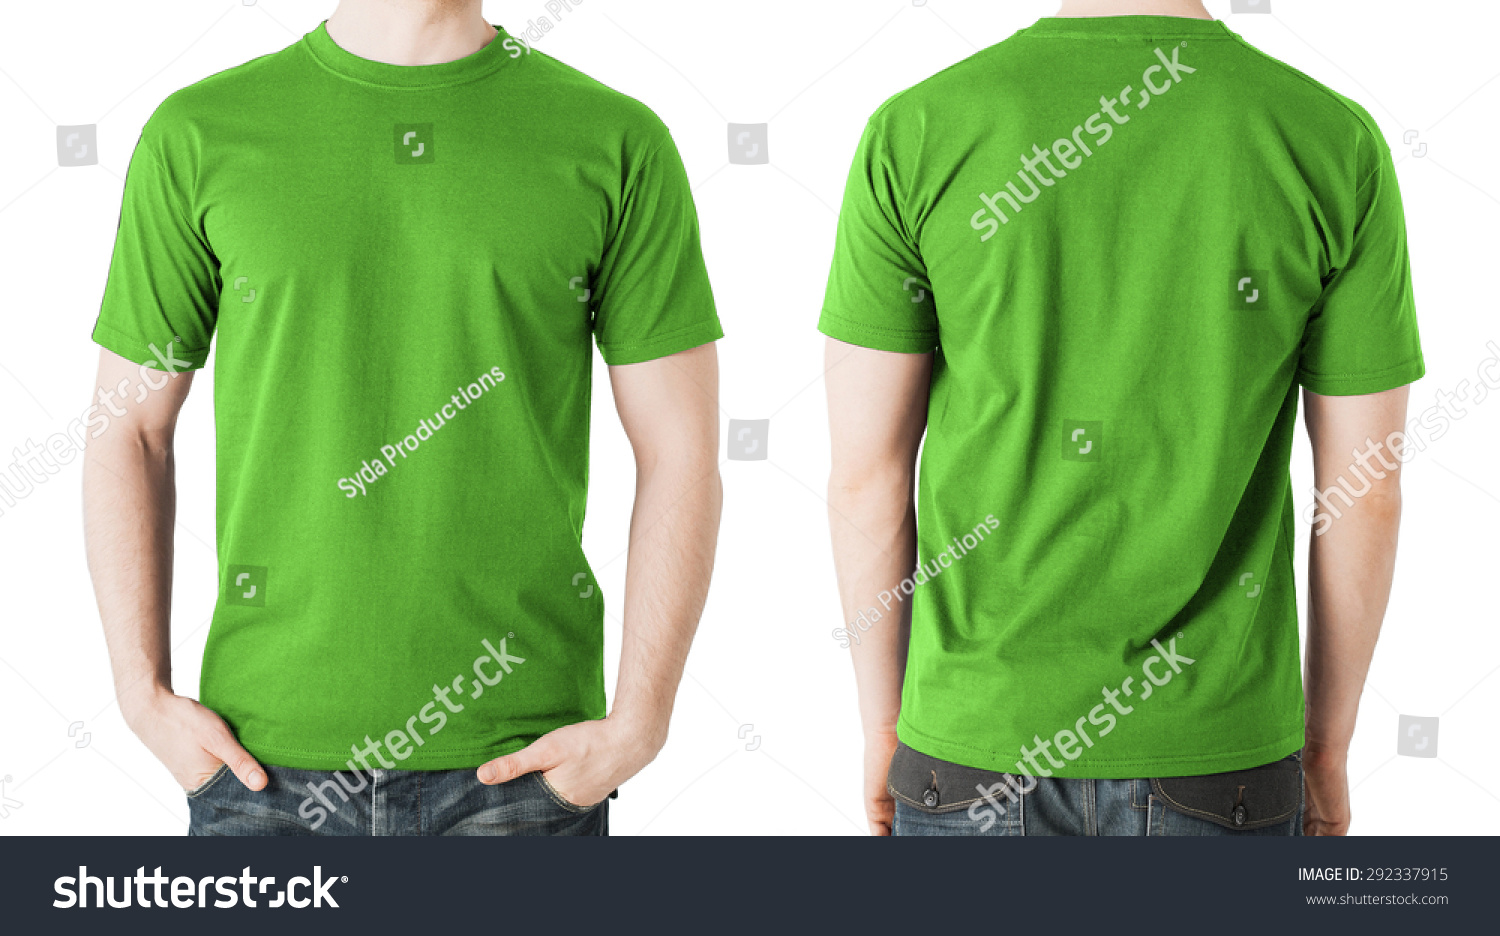 Shirt design green - Clothing Design Concept Man In Blank Green T Shirt Front And Back View